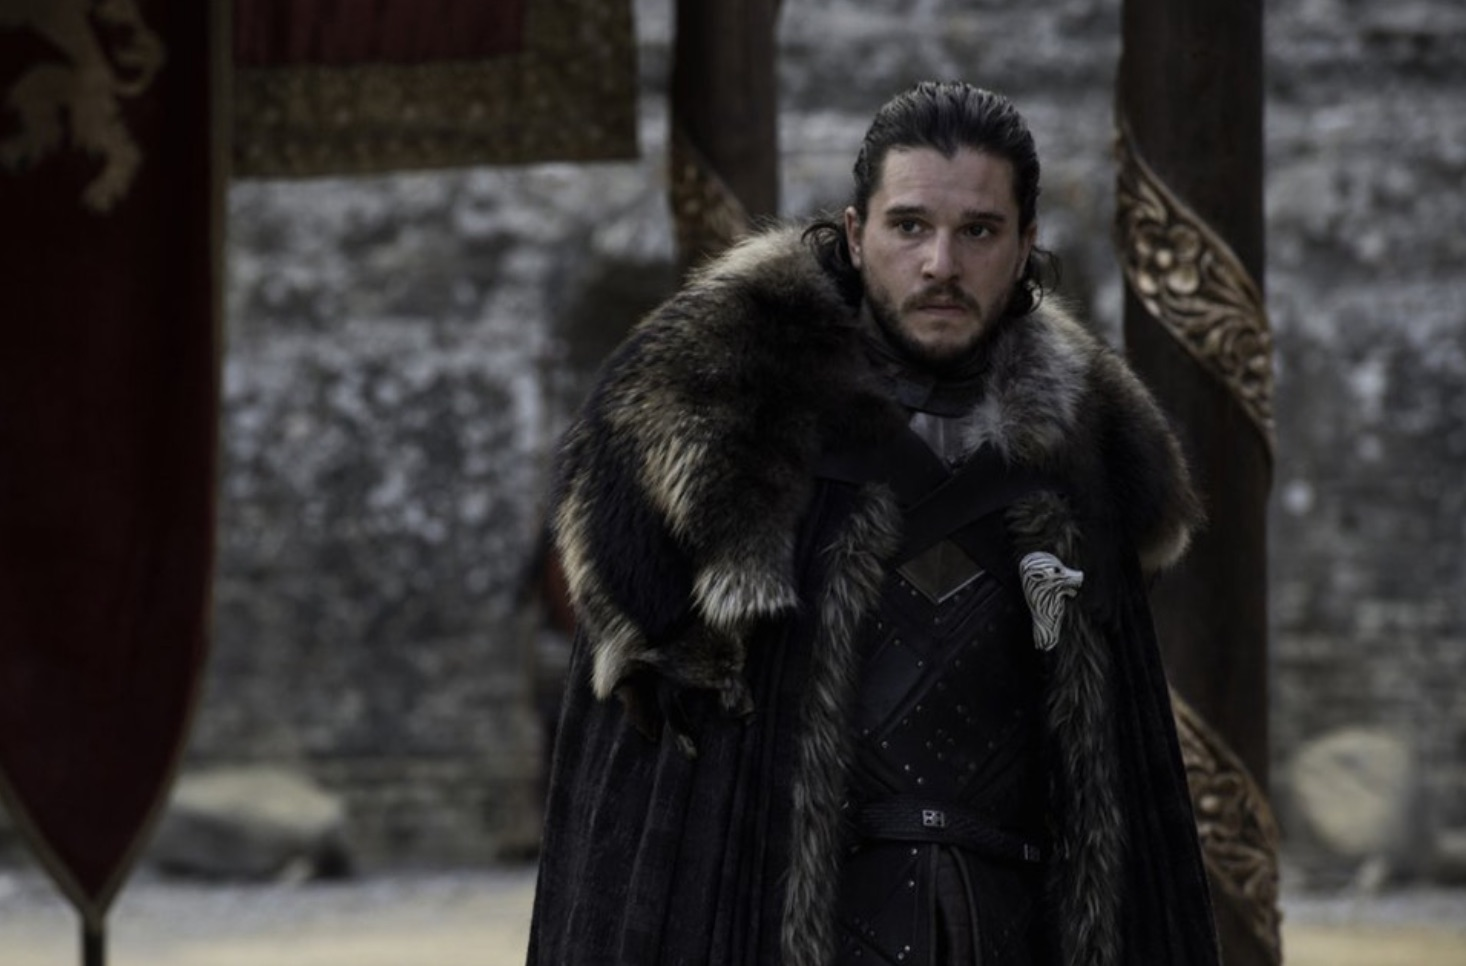 Careful: Today's Game of Thrones finale is leaking like a sieve